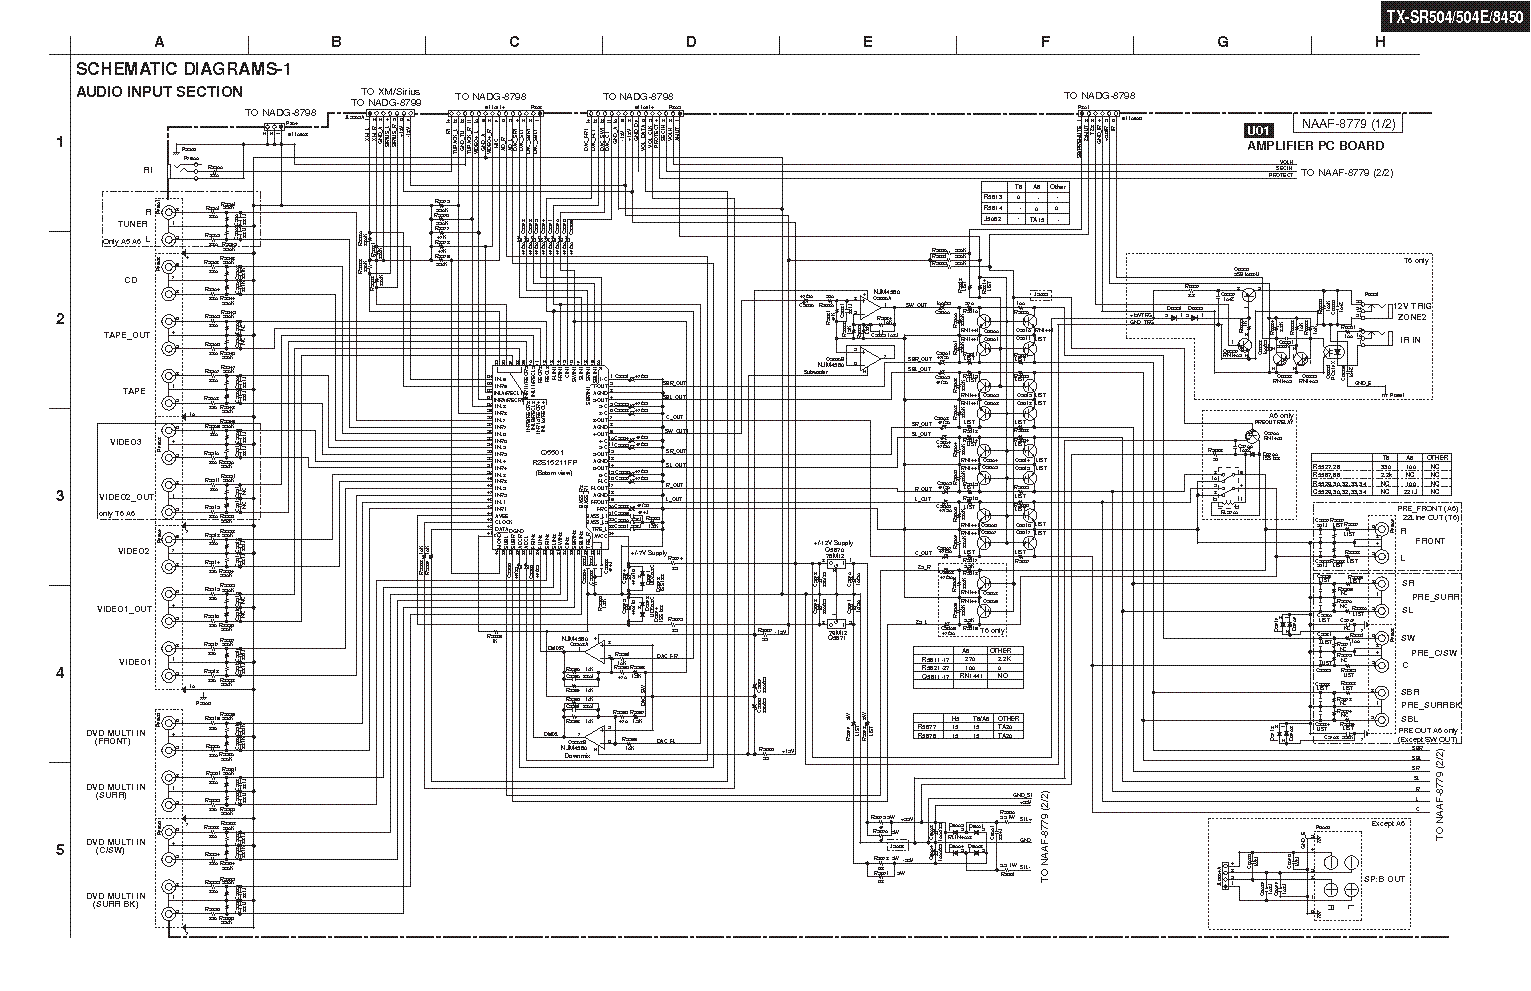 Wiring Diagram For Onkyo Ht R340 : 32 Wiring Diagram